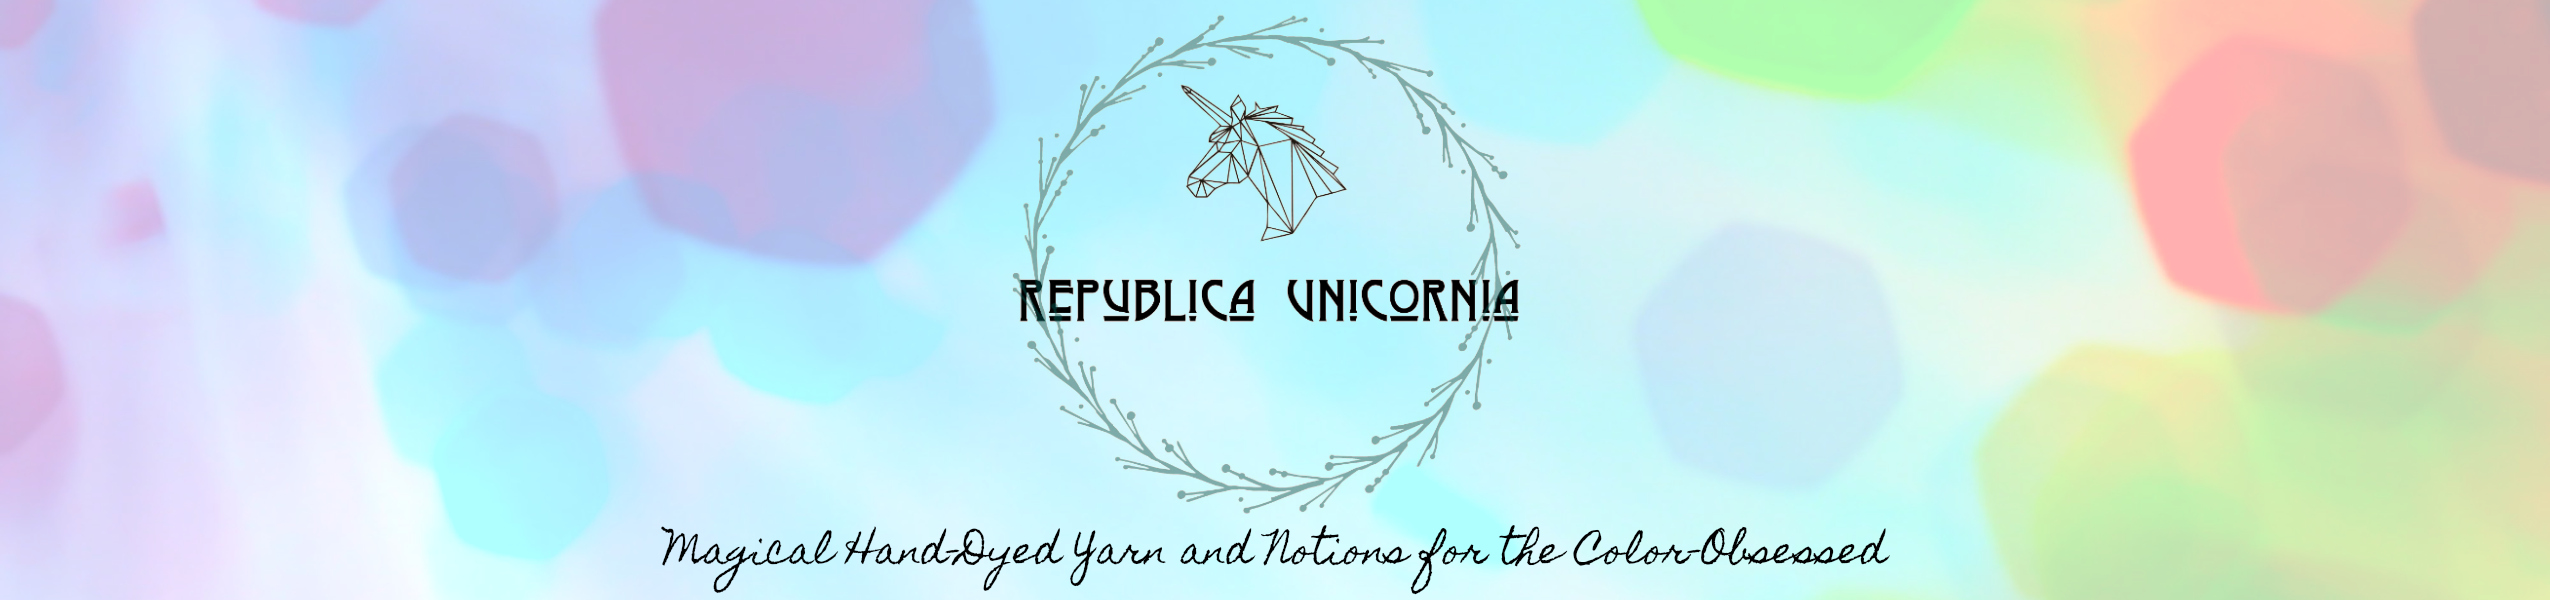 Republica Unicornia